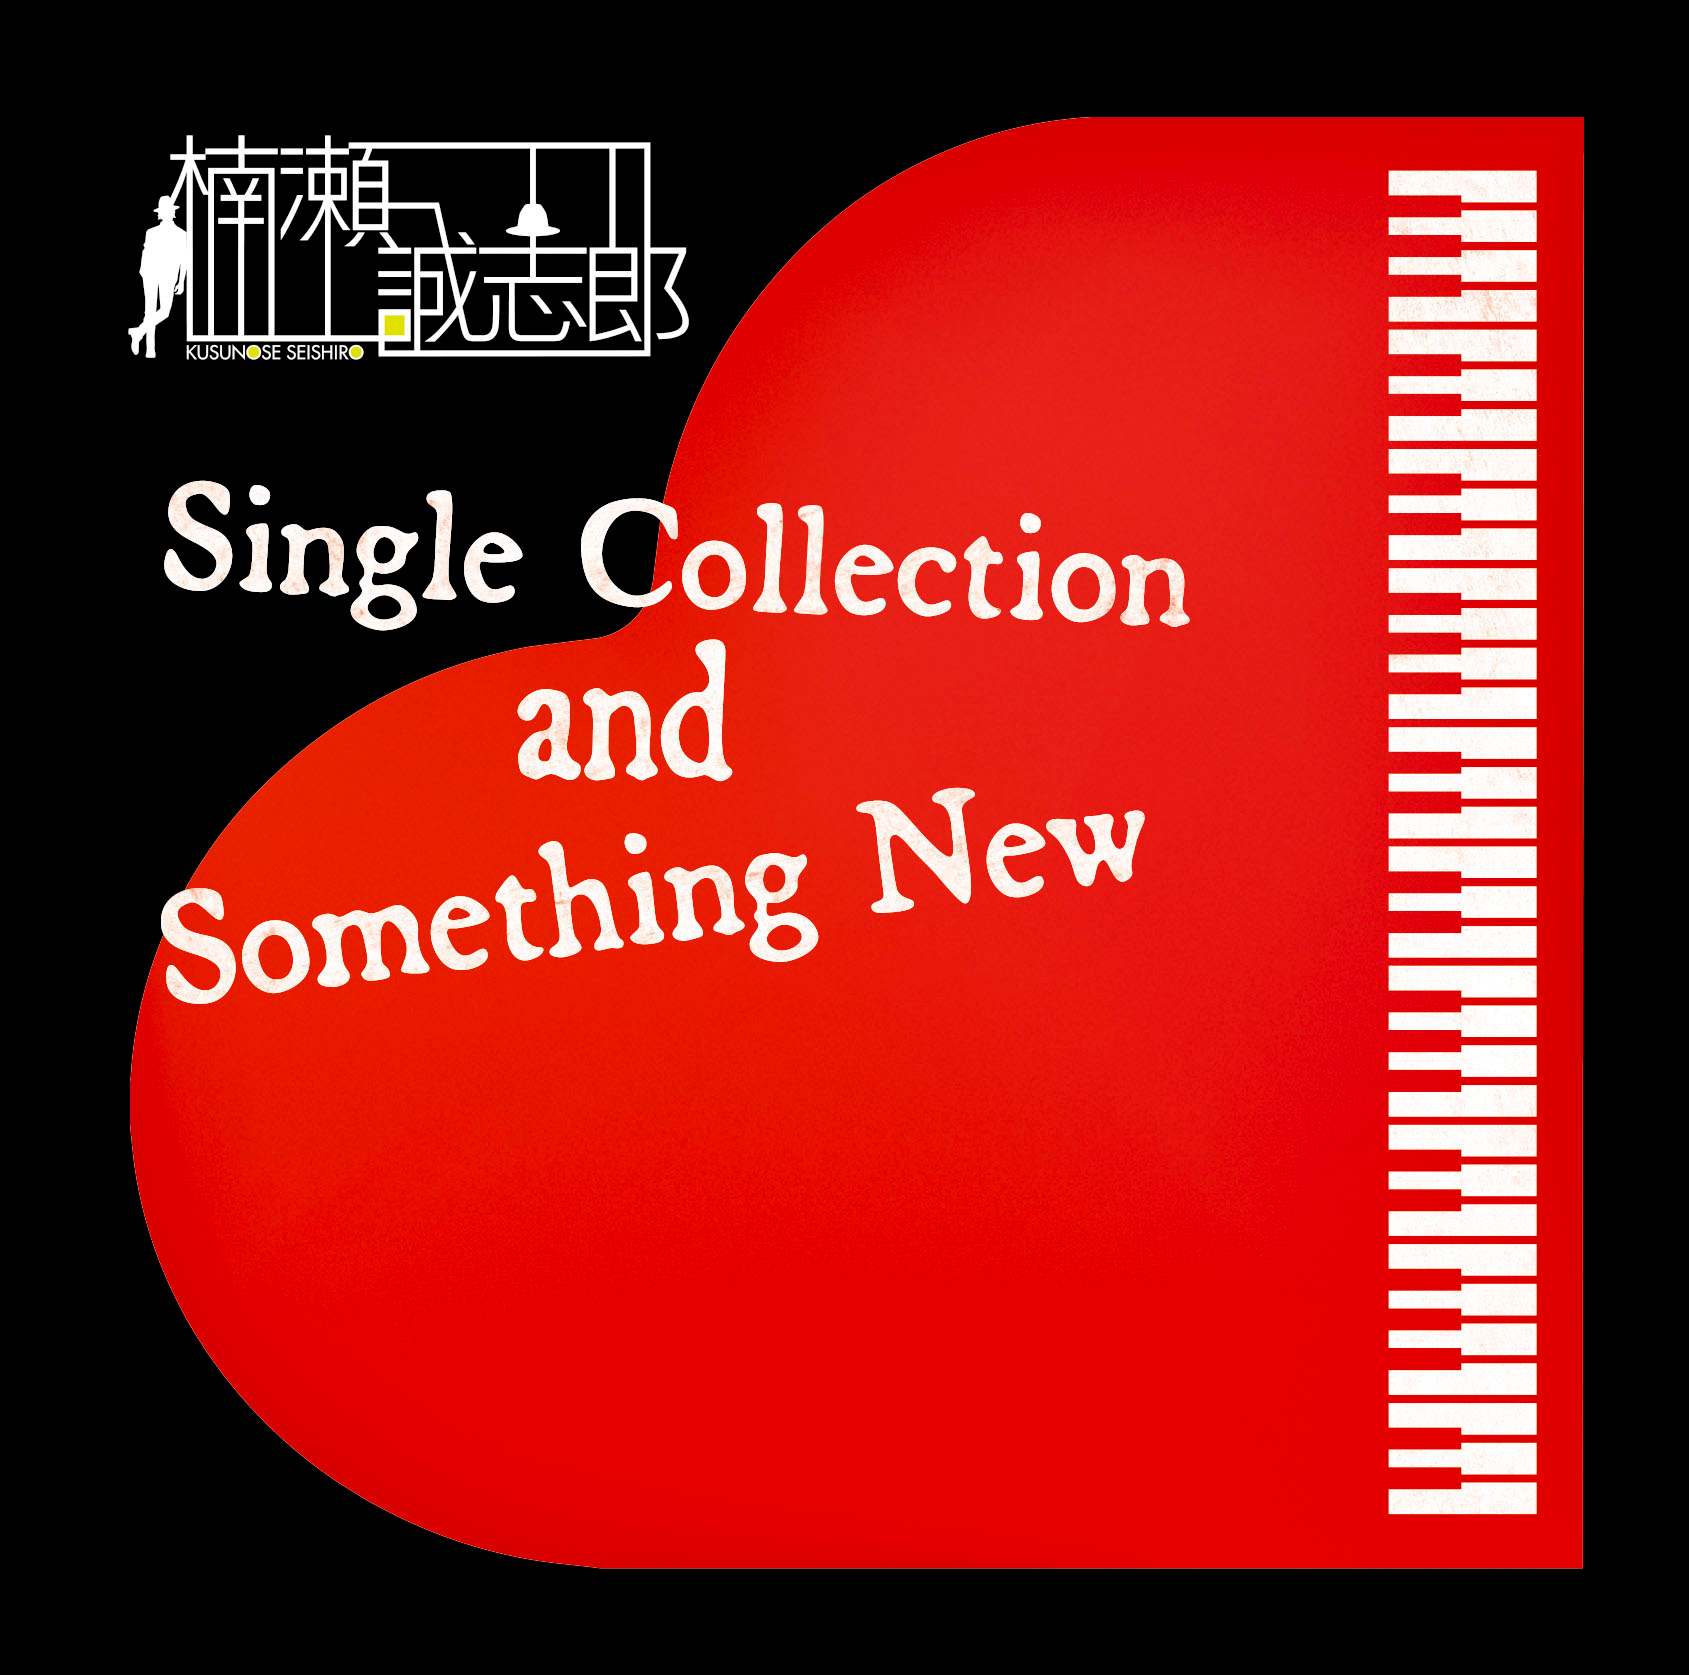 楠瀬誠志郎 New Best Album『Single collection and Something New』